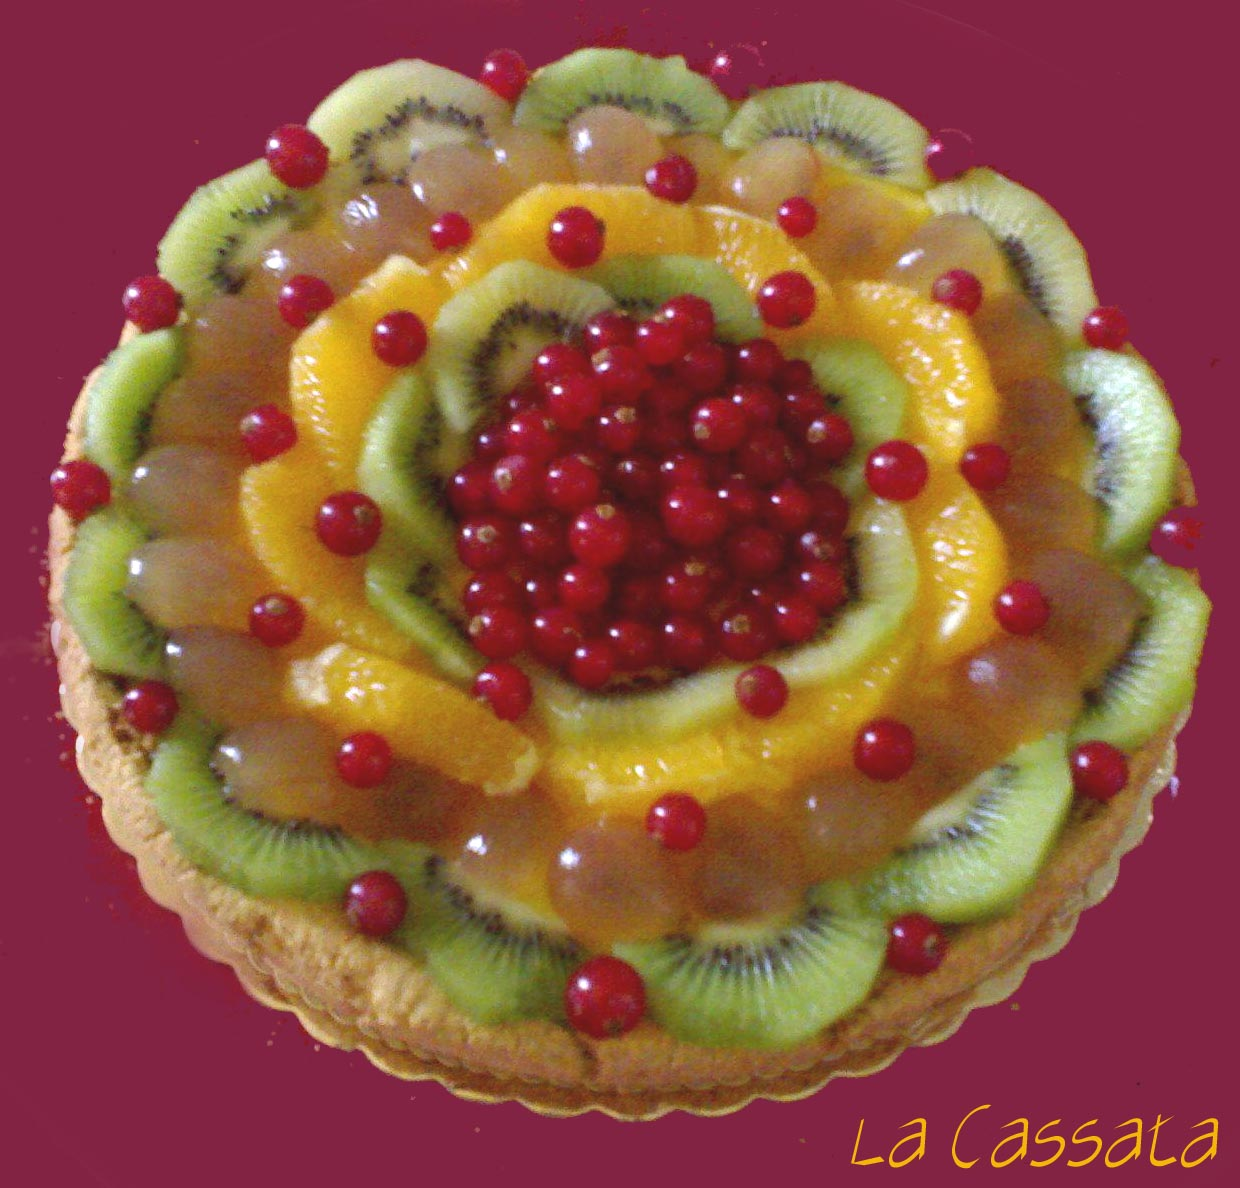 tarte aux fruits 2 la cassata